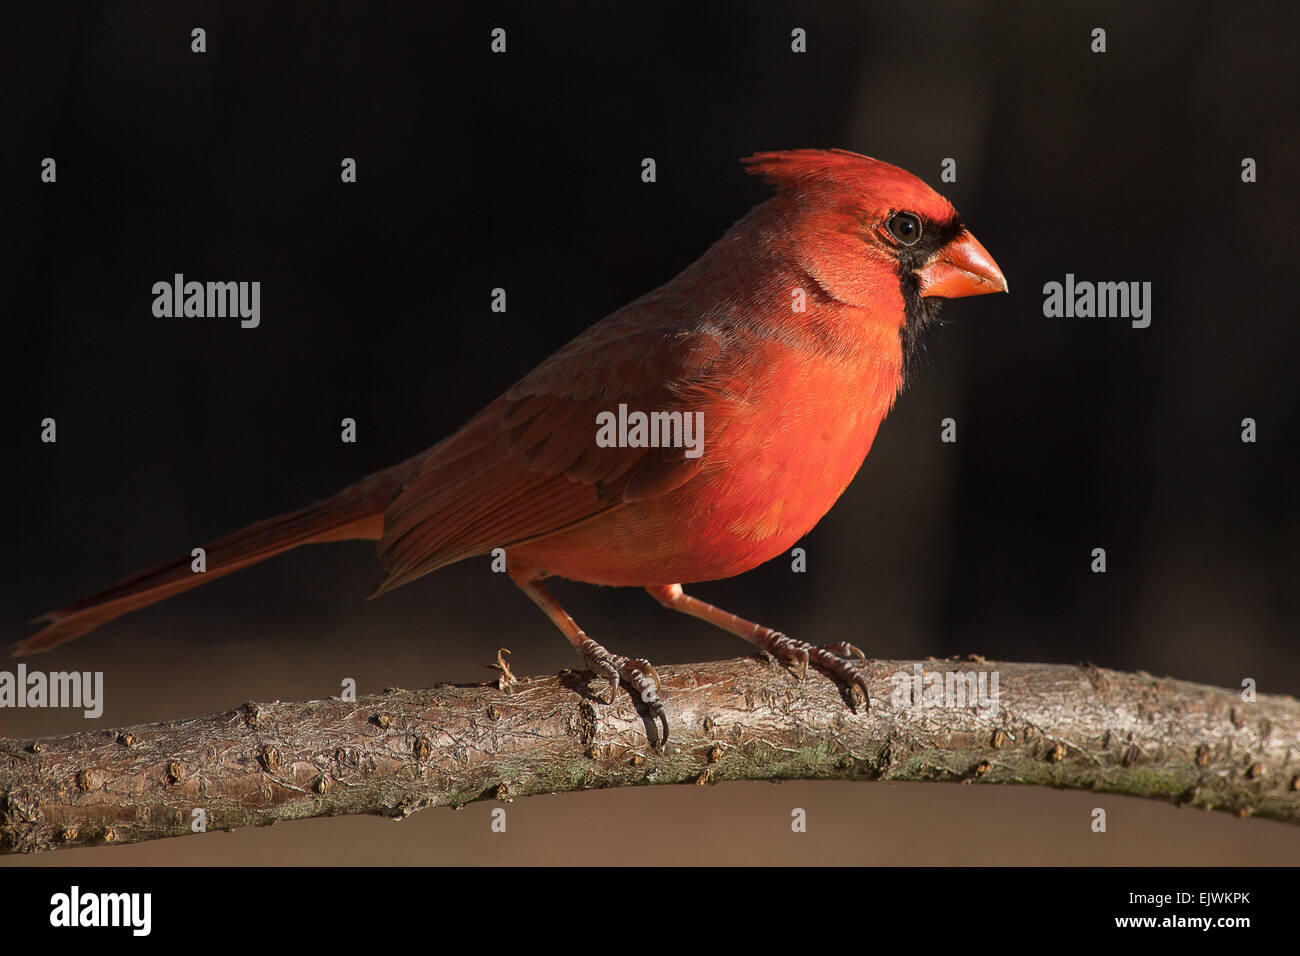 Northern Cardinal in afternoon light - Stock Image